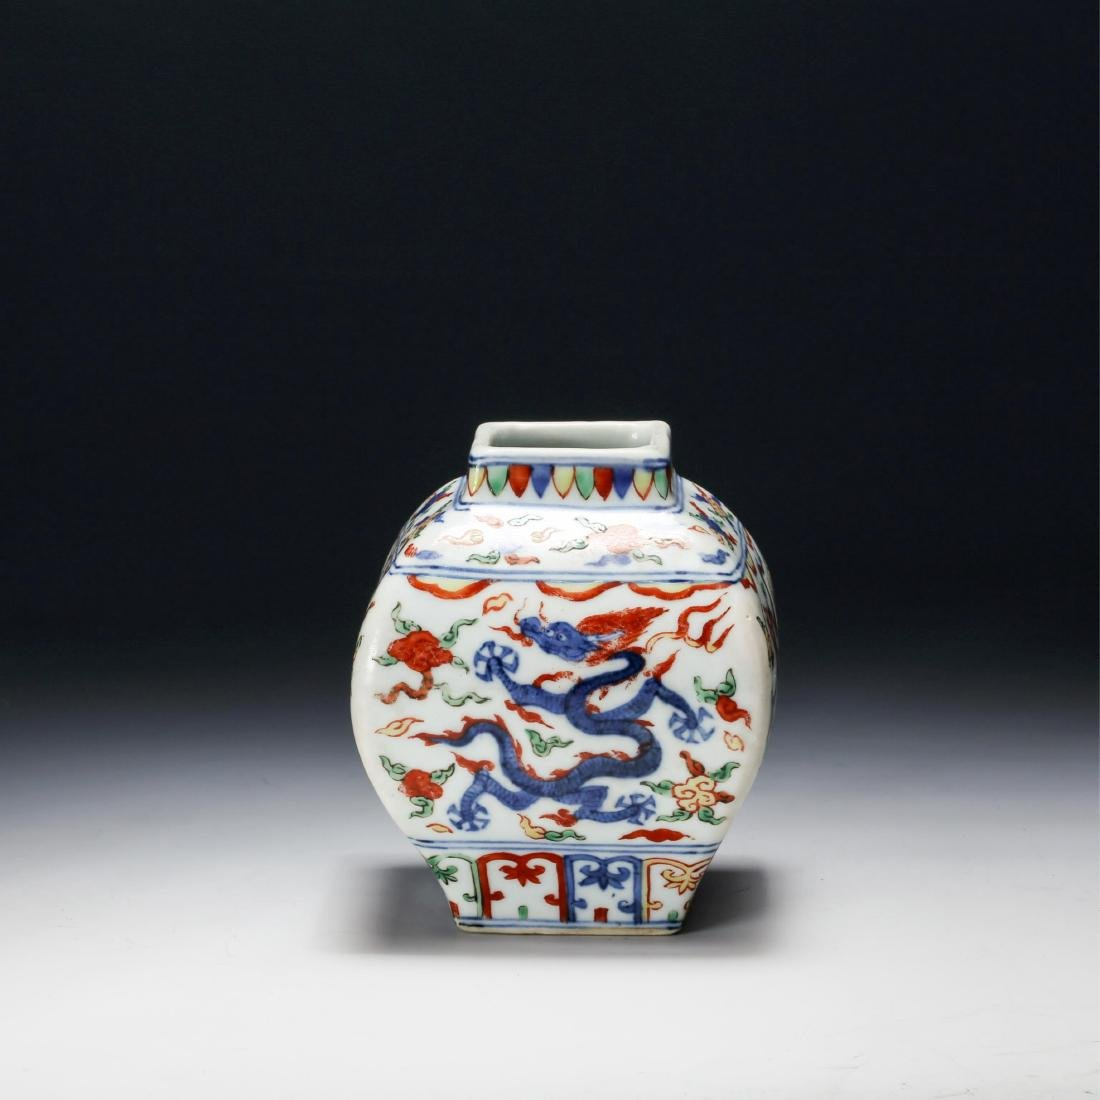 CHINESE BLUE AND WHITE WUCAI PORCELAIN VASE, QING